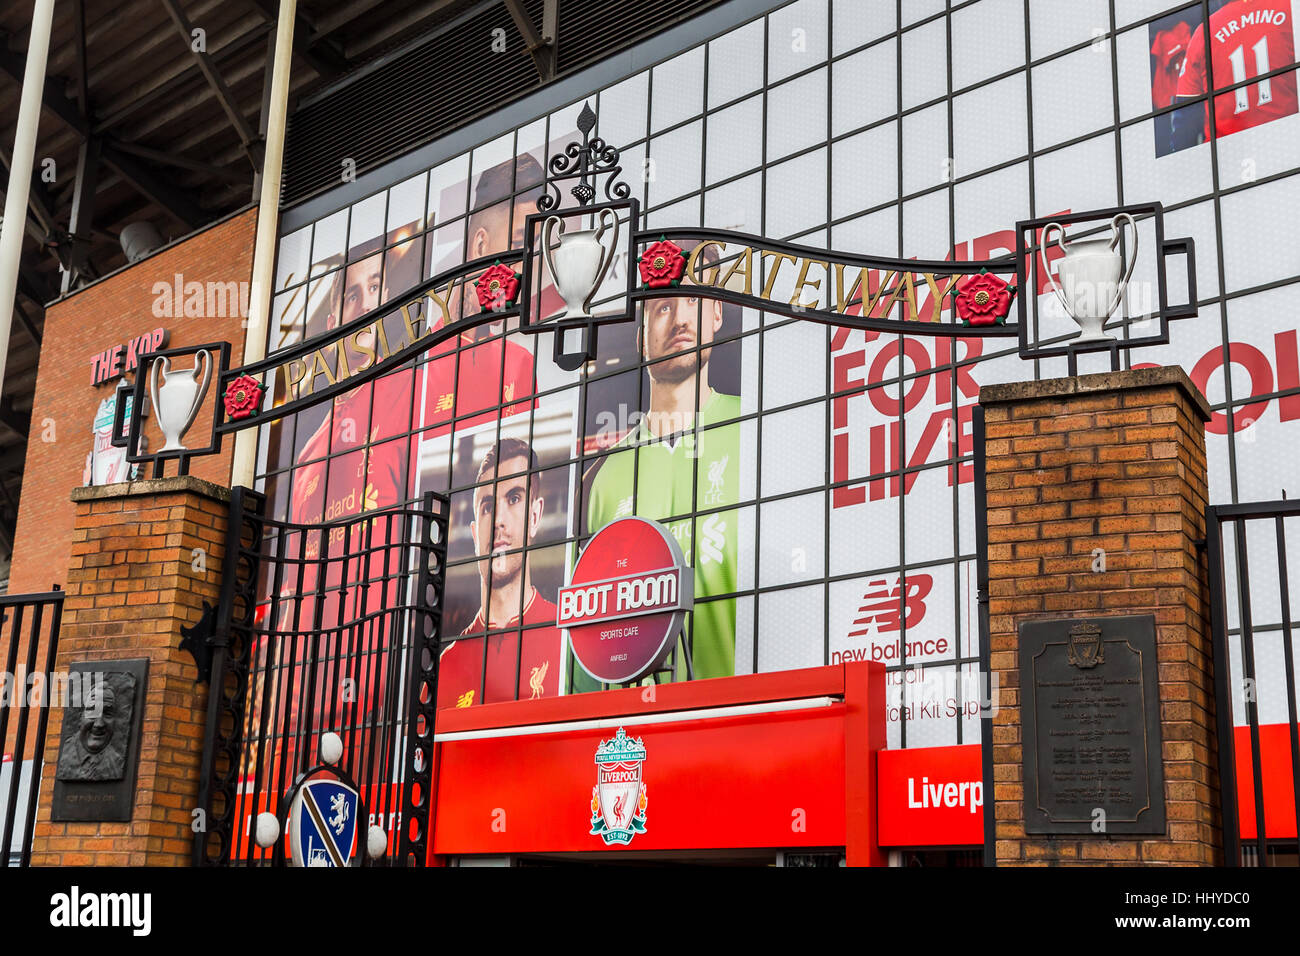 Close-up of the Paisley Gates in front of The Kop Stand at Liverpool Football Club. - Stock Image